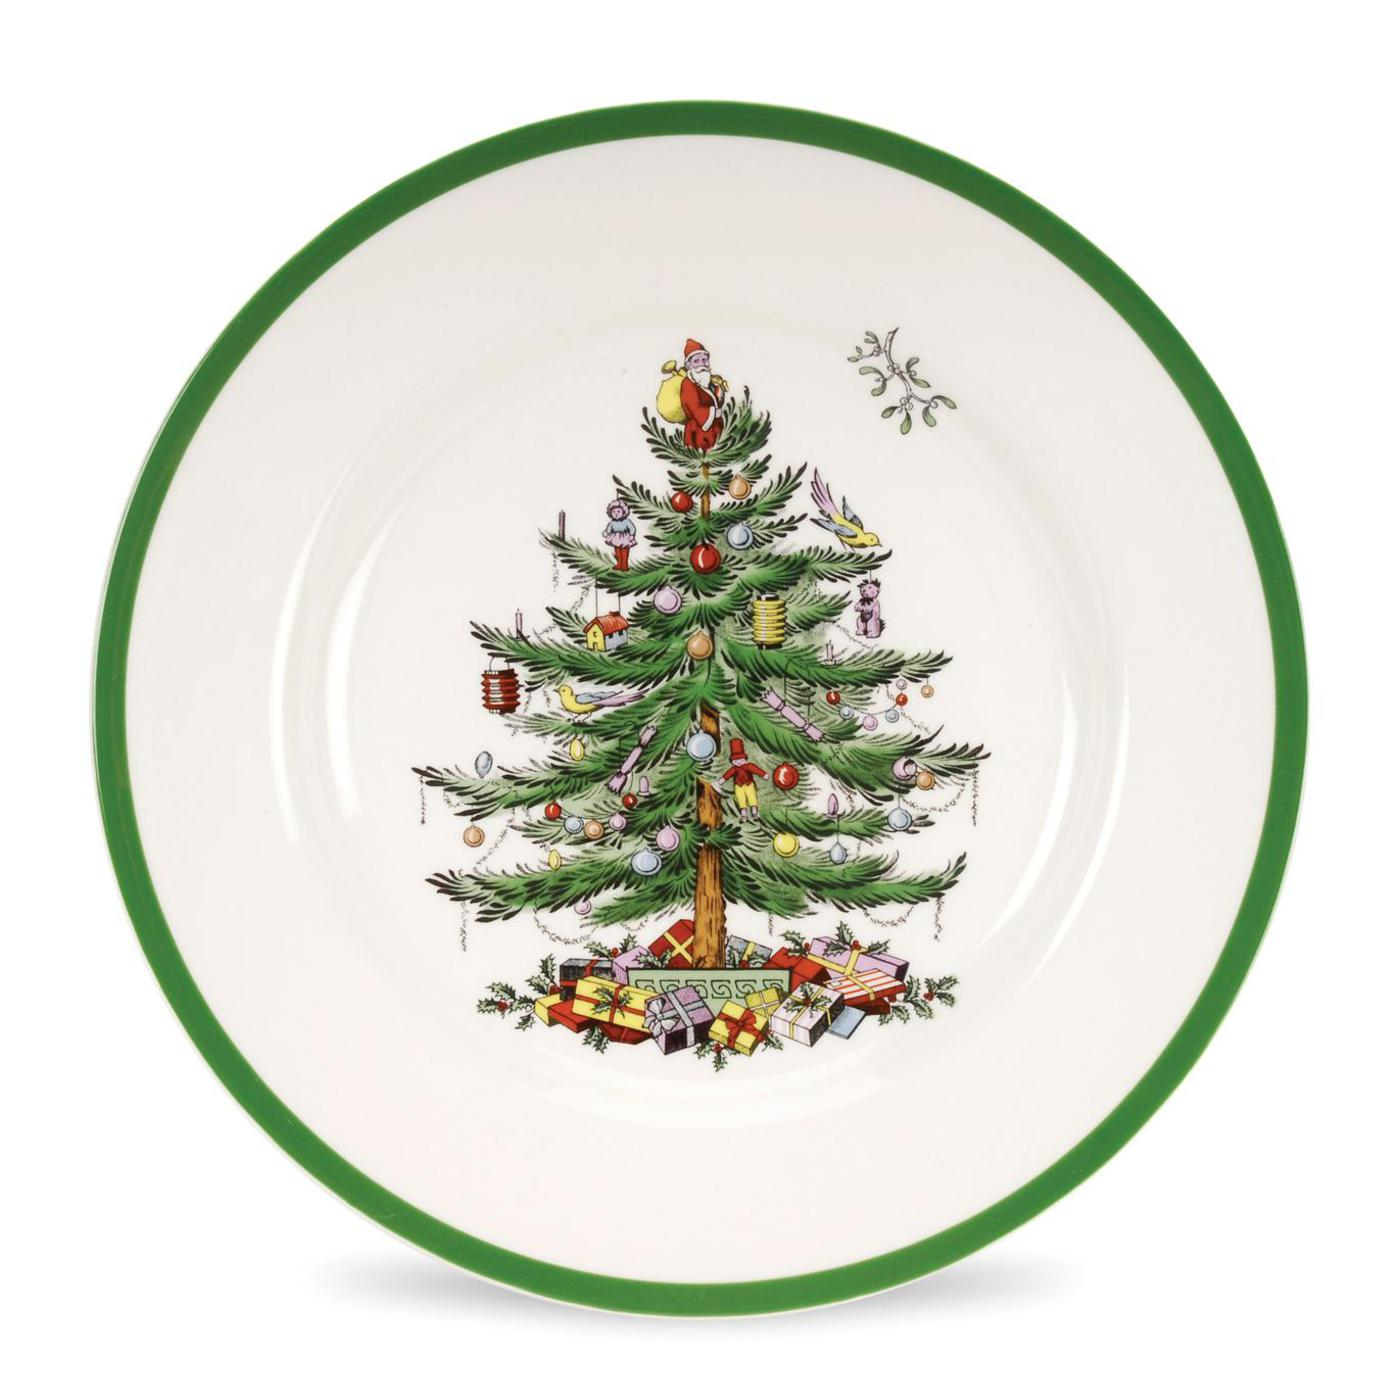 Spode Christmas Tree Set of 4 Dinner Plates image number 0